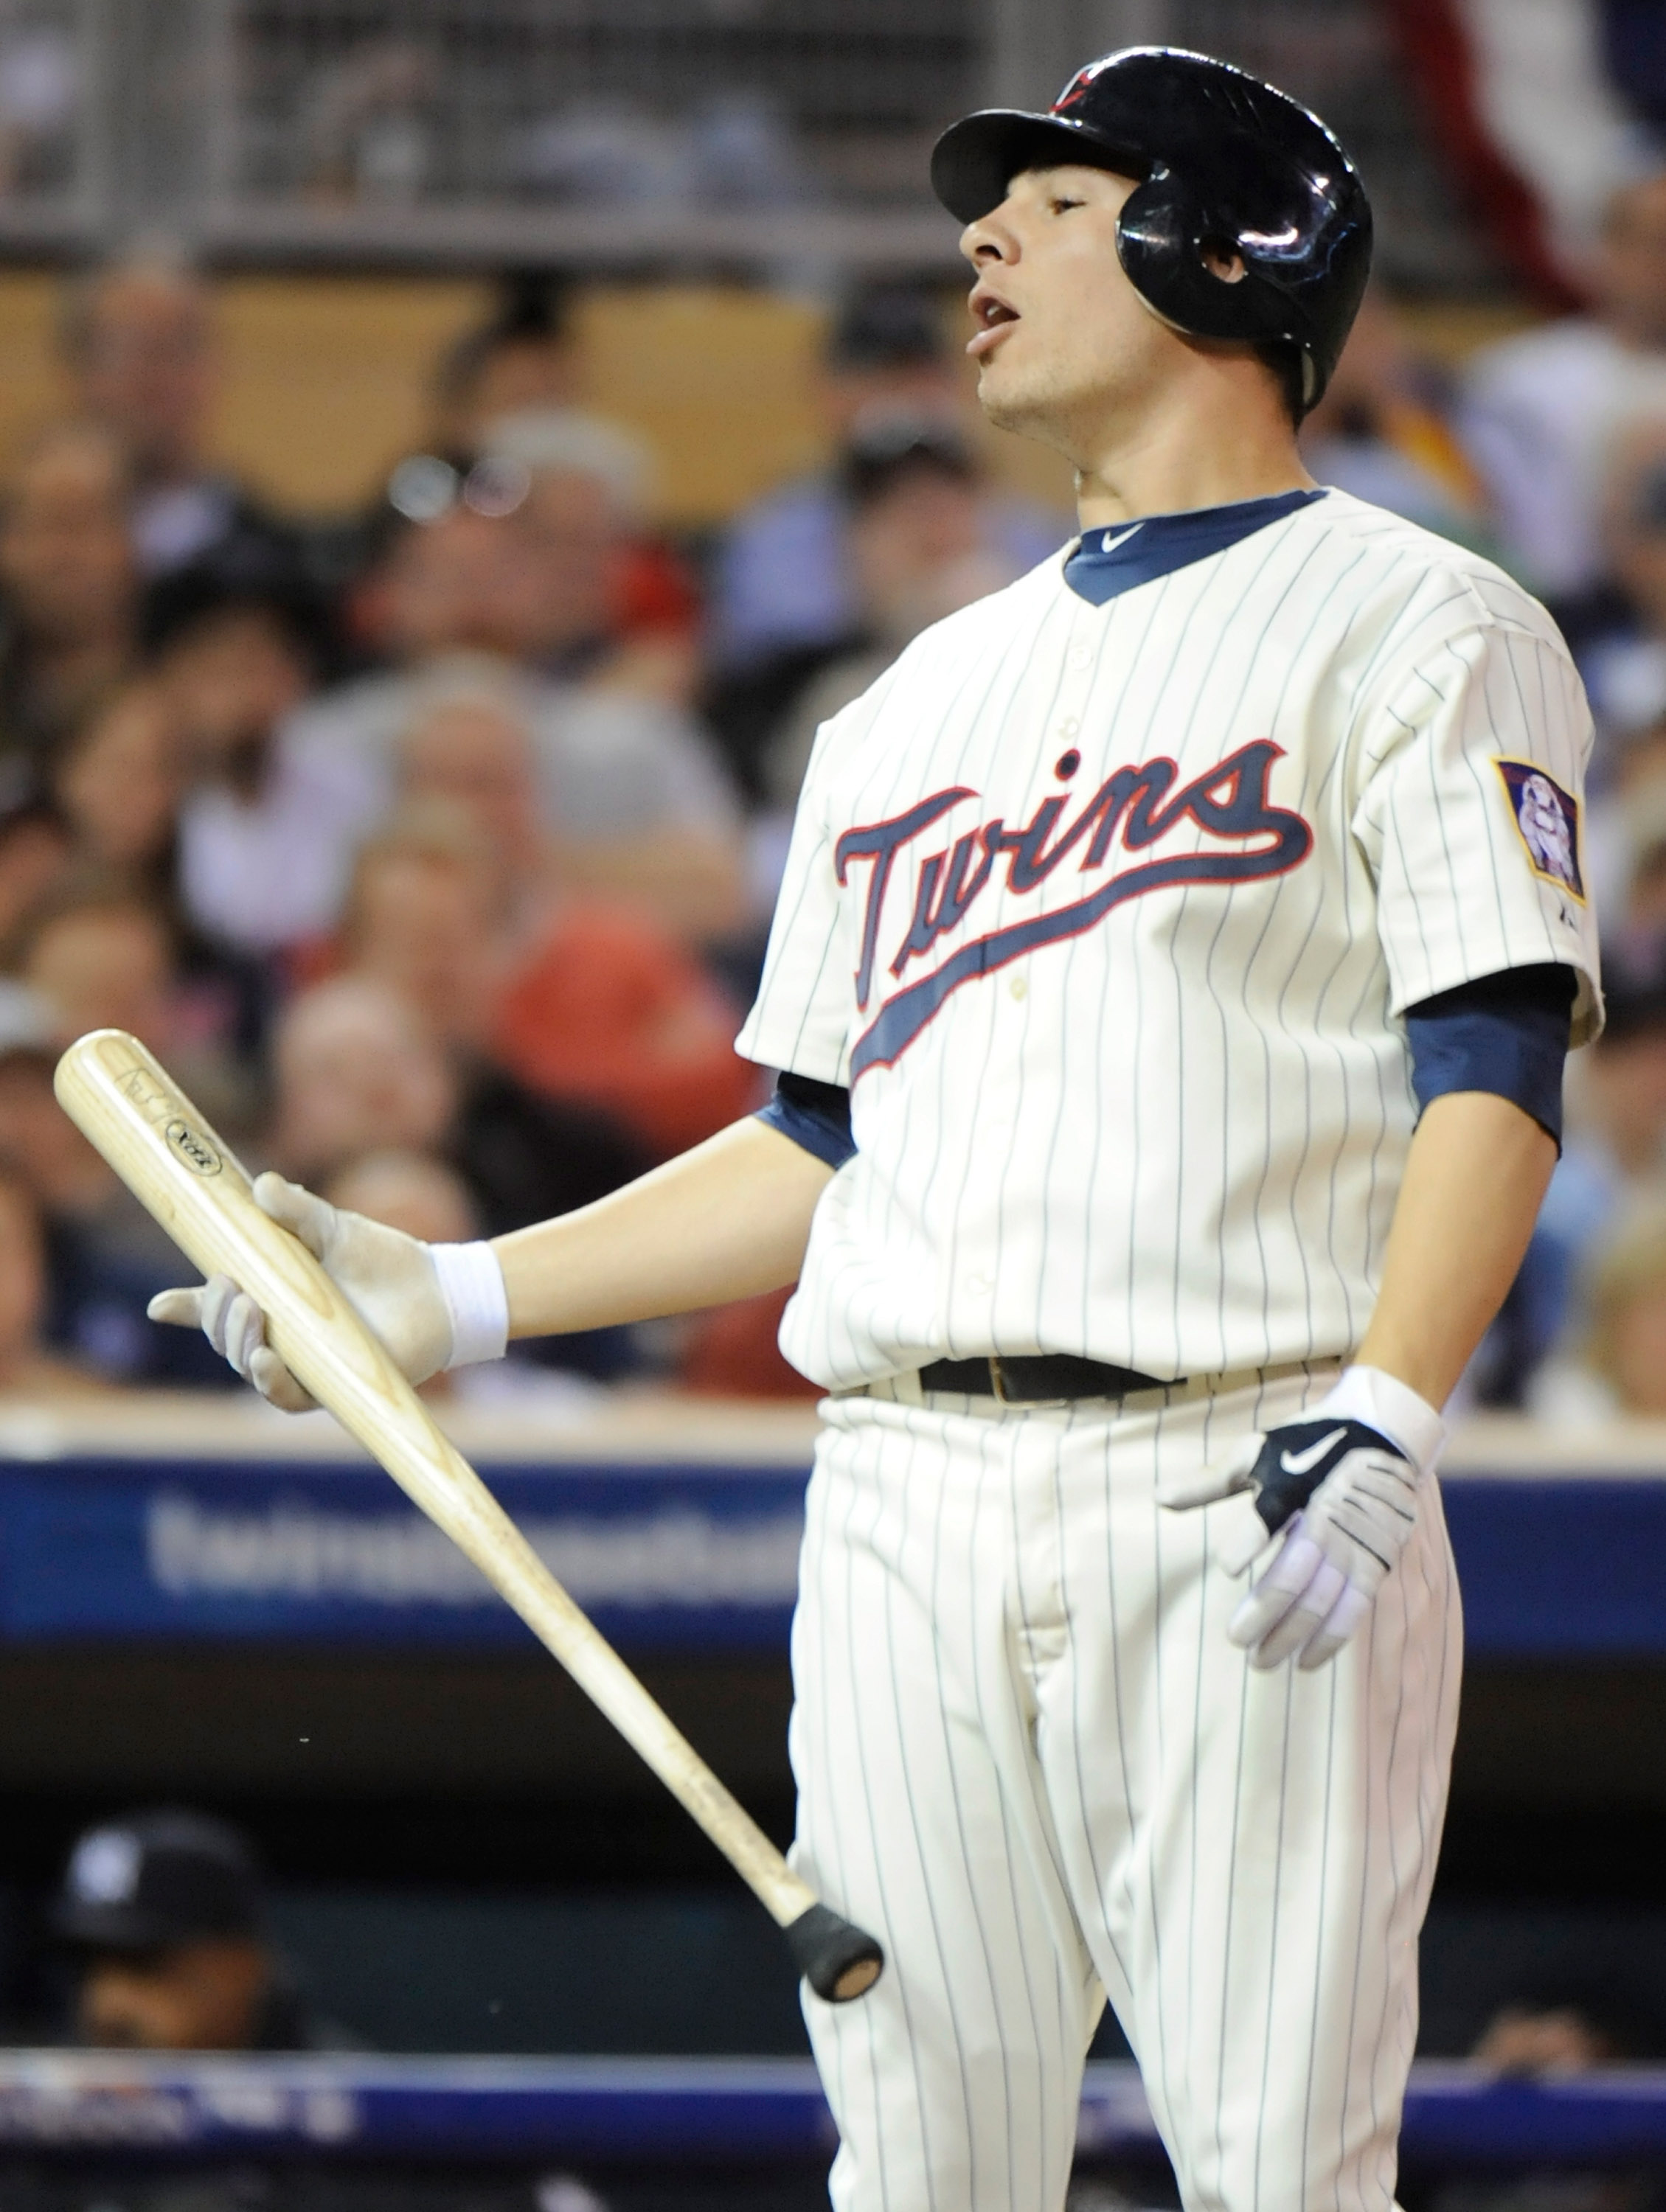 MINNEAPOLIS, MN - OCTOBER 7: Danny Valencia #19 of the Minnesota Twins reacts to a called third strike in the seventh inning during game two of the ALDS game against the New York Yankees on October 7, 2010 at Target Field in Minneapolis, Minnesota. (Photo